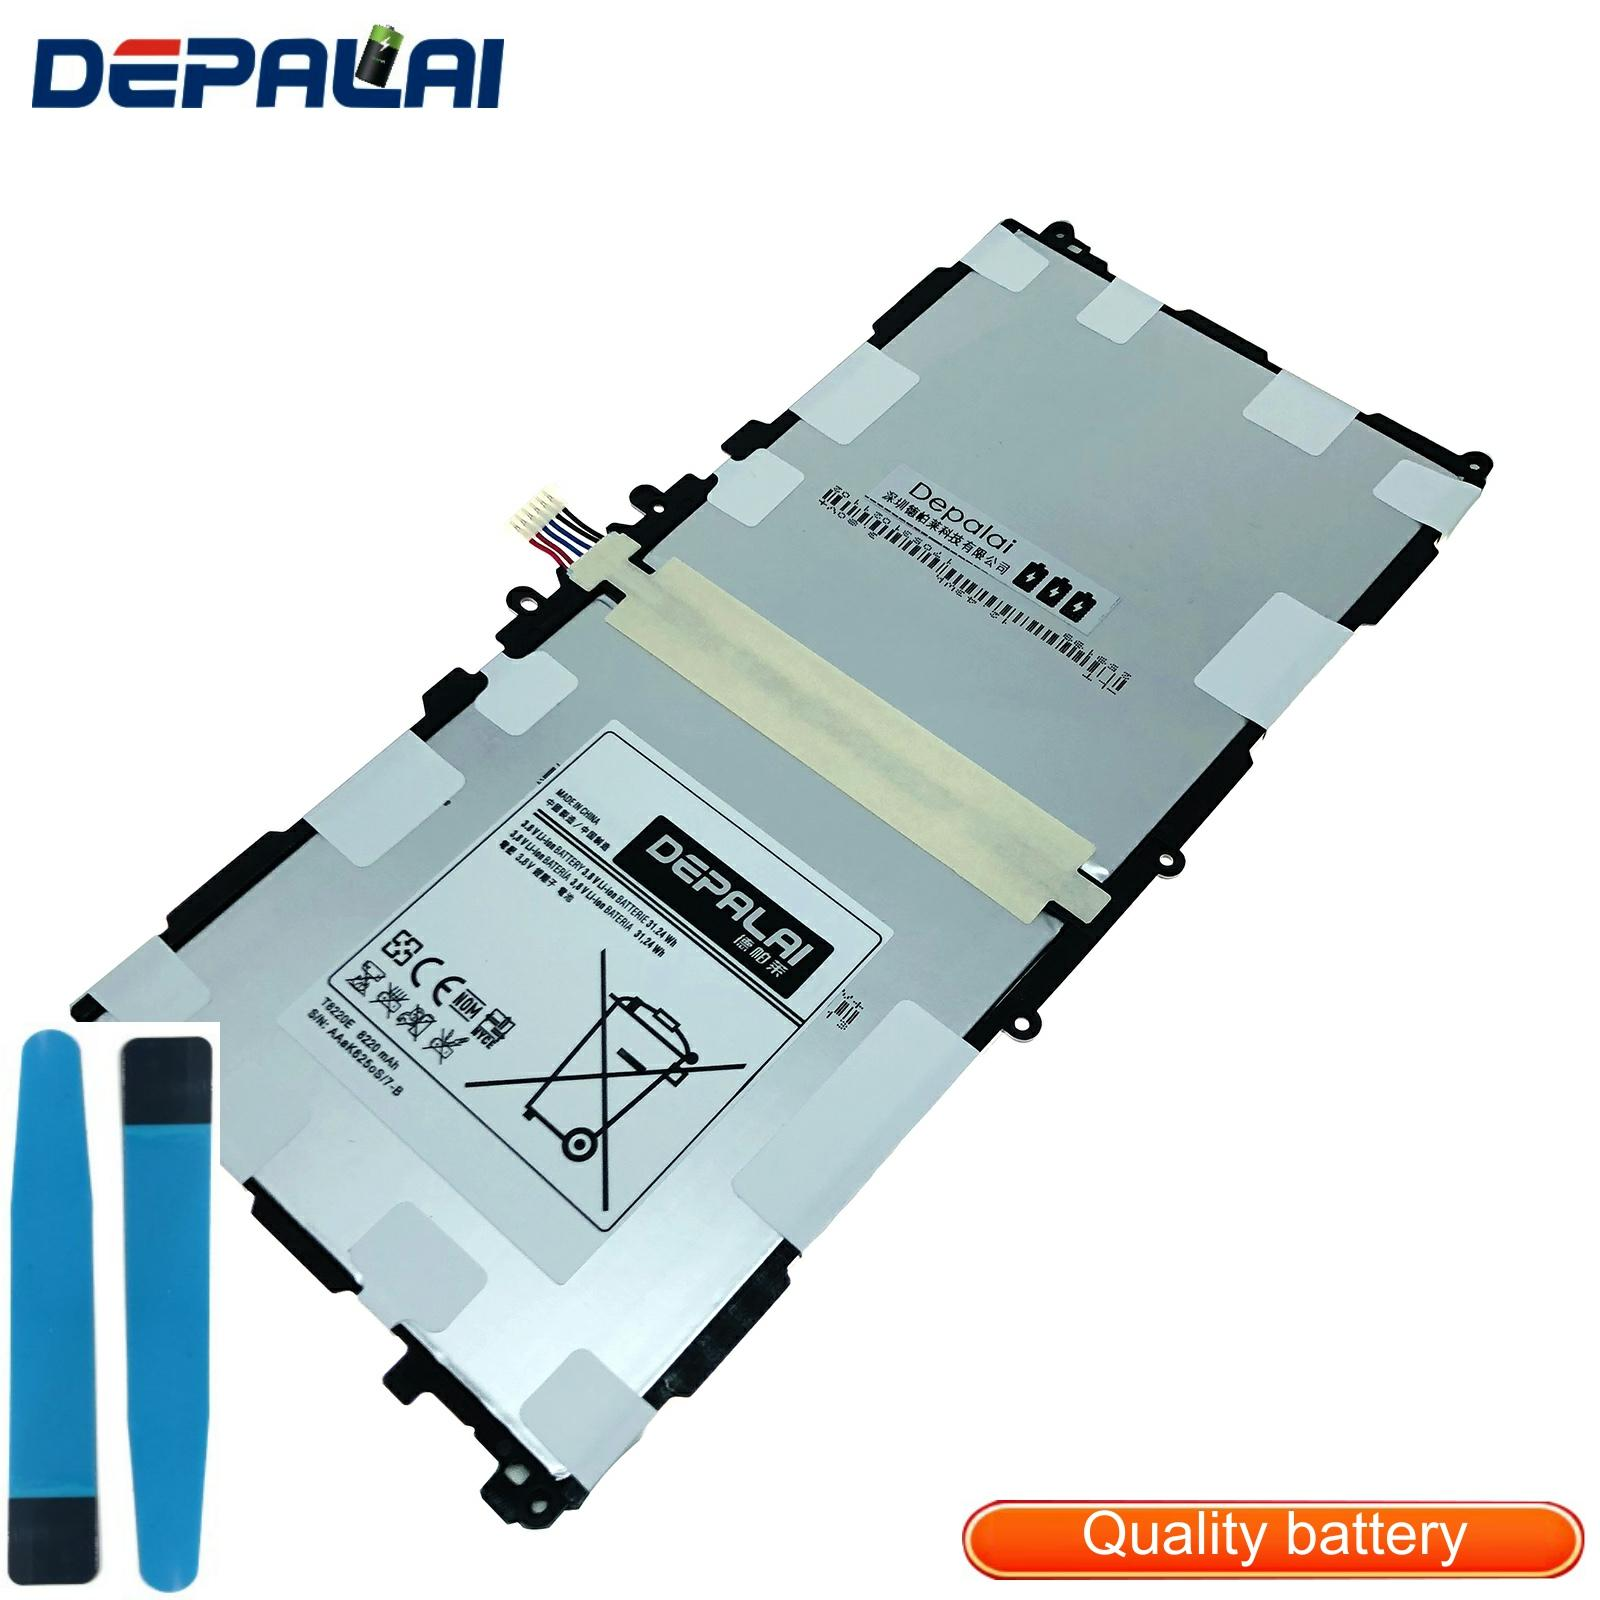 T8220E Tablets Replacement <font><b>Battery</b></font> For <font><b>Samsung</b></font> Galaxy <font><b>Note</b></font> <font><b>10.1</b></font> <font><b>2014</b></font> <font><b>Edition</b></font> SM-P601 P600 T520 P601 P605 P607 8220mAh Real image